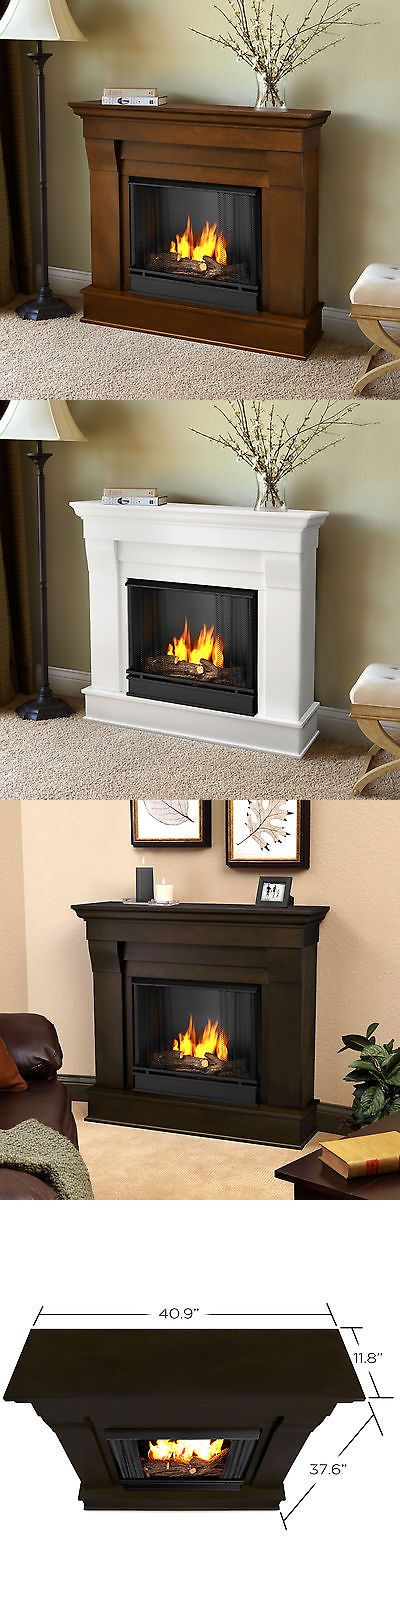 Fireplaces 175756: Real Flame Chateau Portable Gel Fireplace Heater 3 Colors Realflame -> BUY IT NOW ONLY: $417 on eBay!